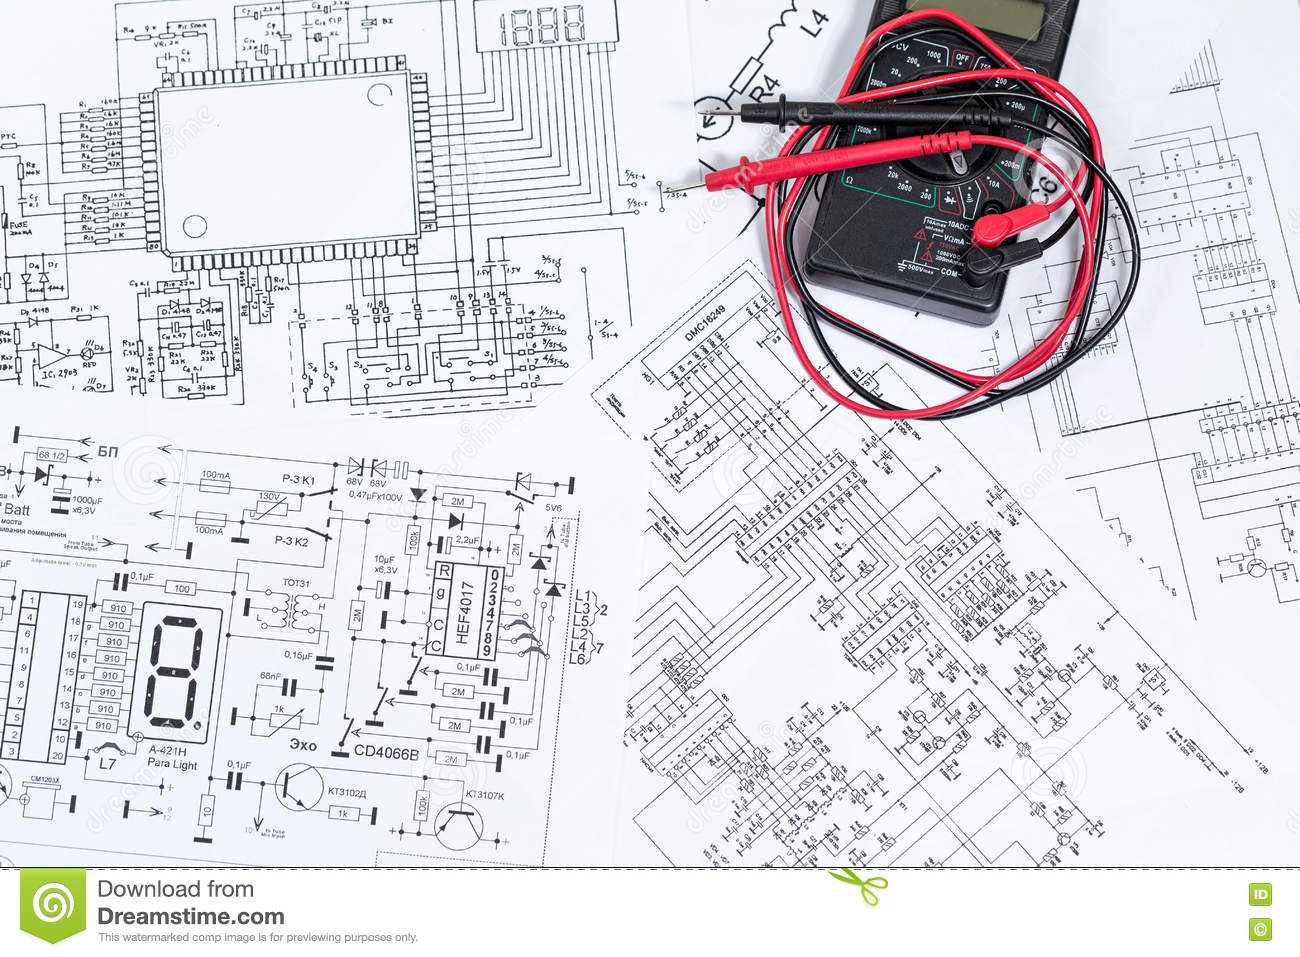 The Electrical And Electronic Stock Photo - Image of design